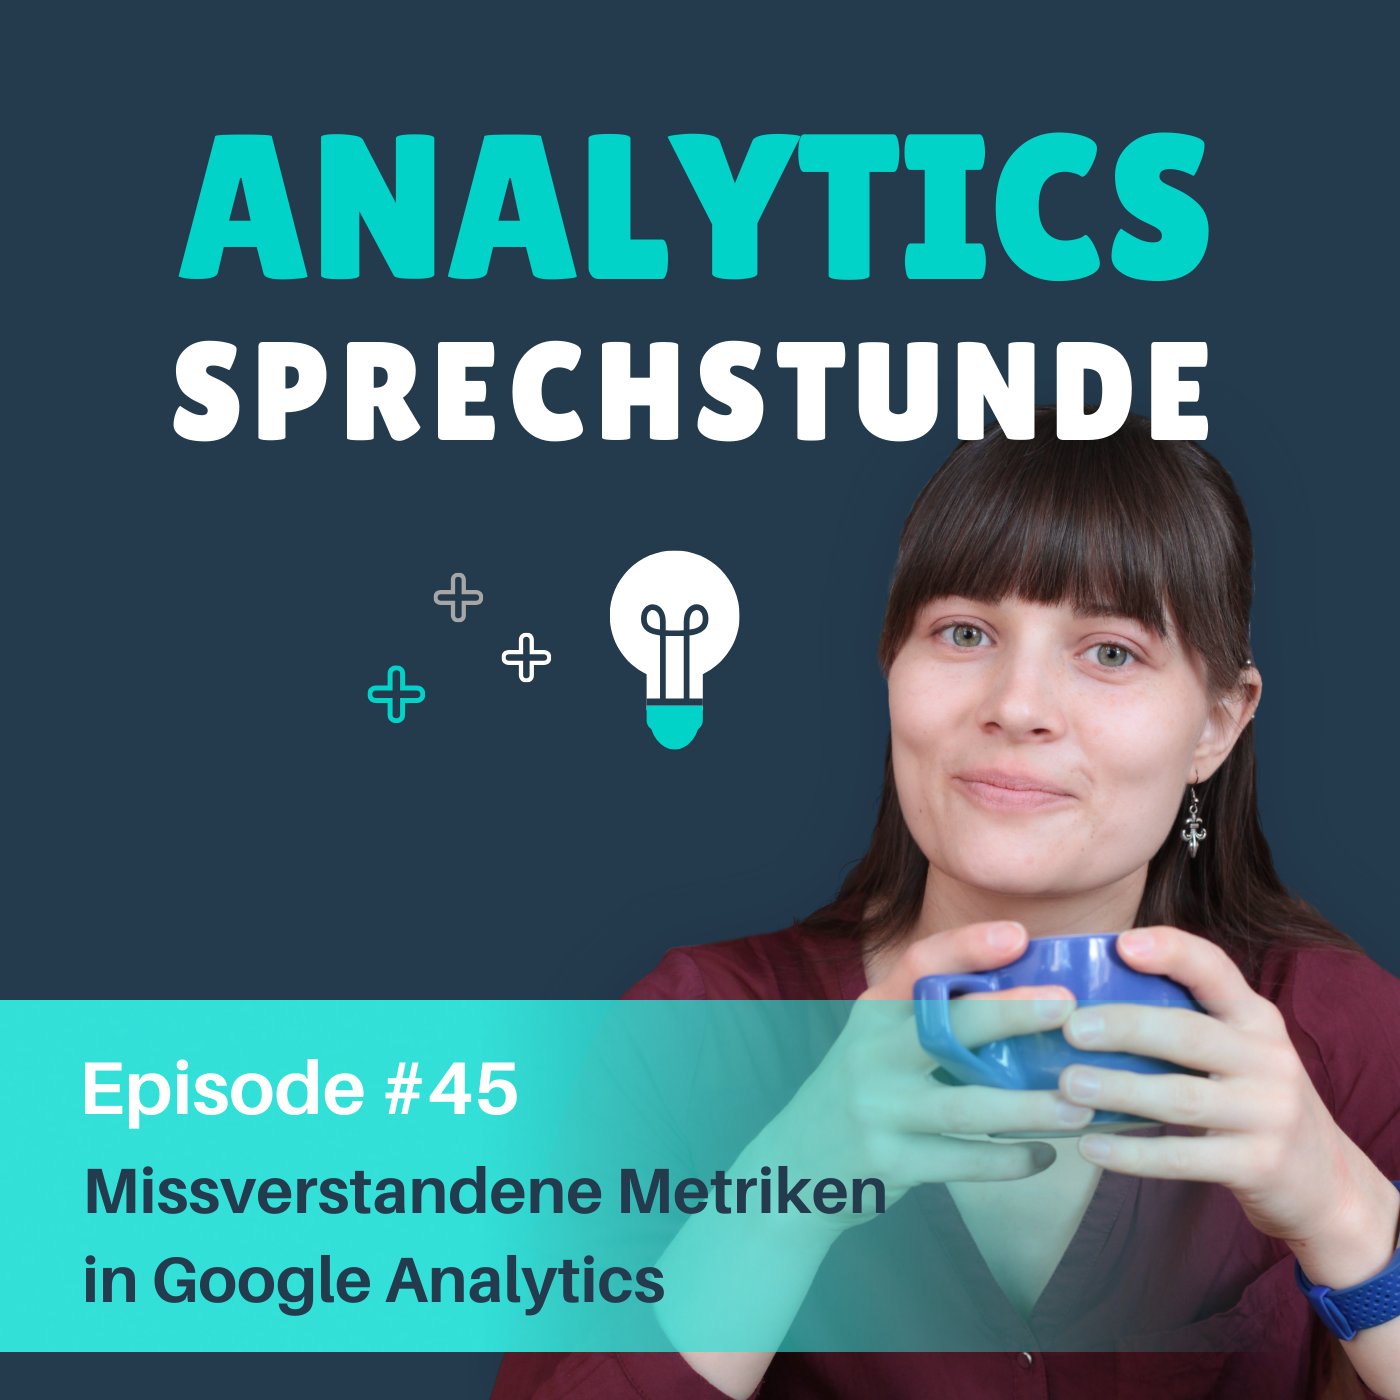 45 Der Club der missverstandenen Metriken in Google Analytics